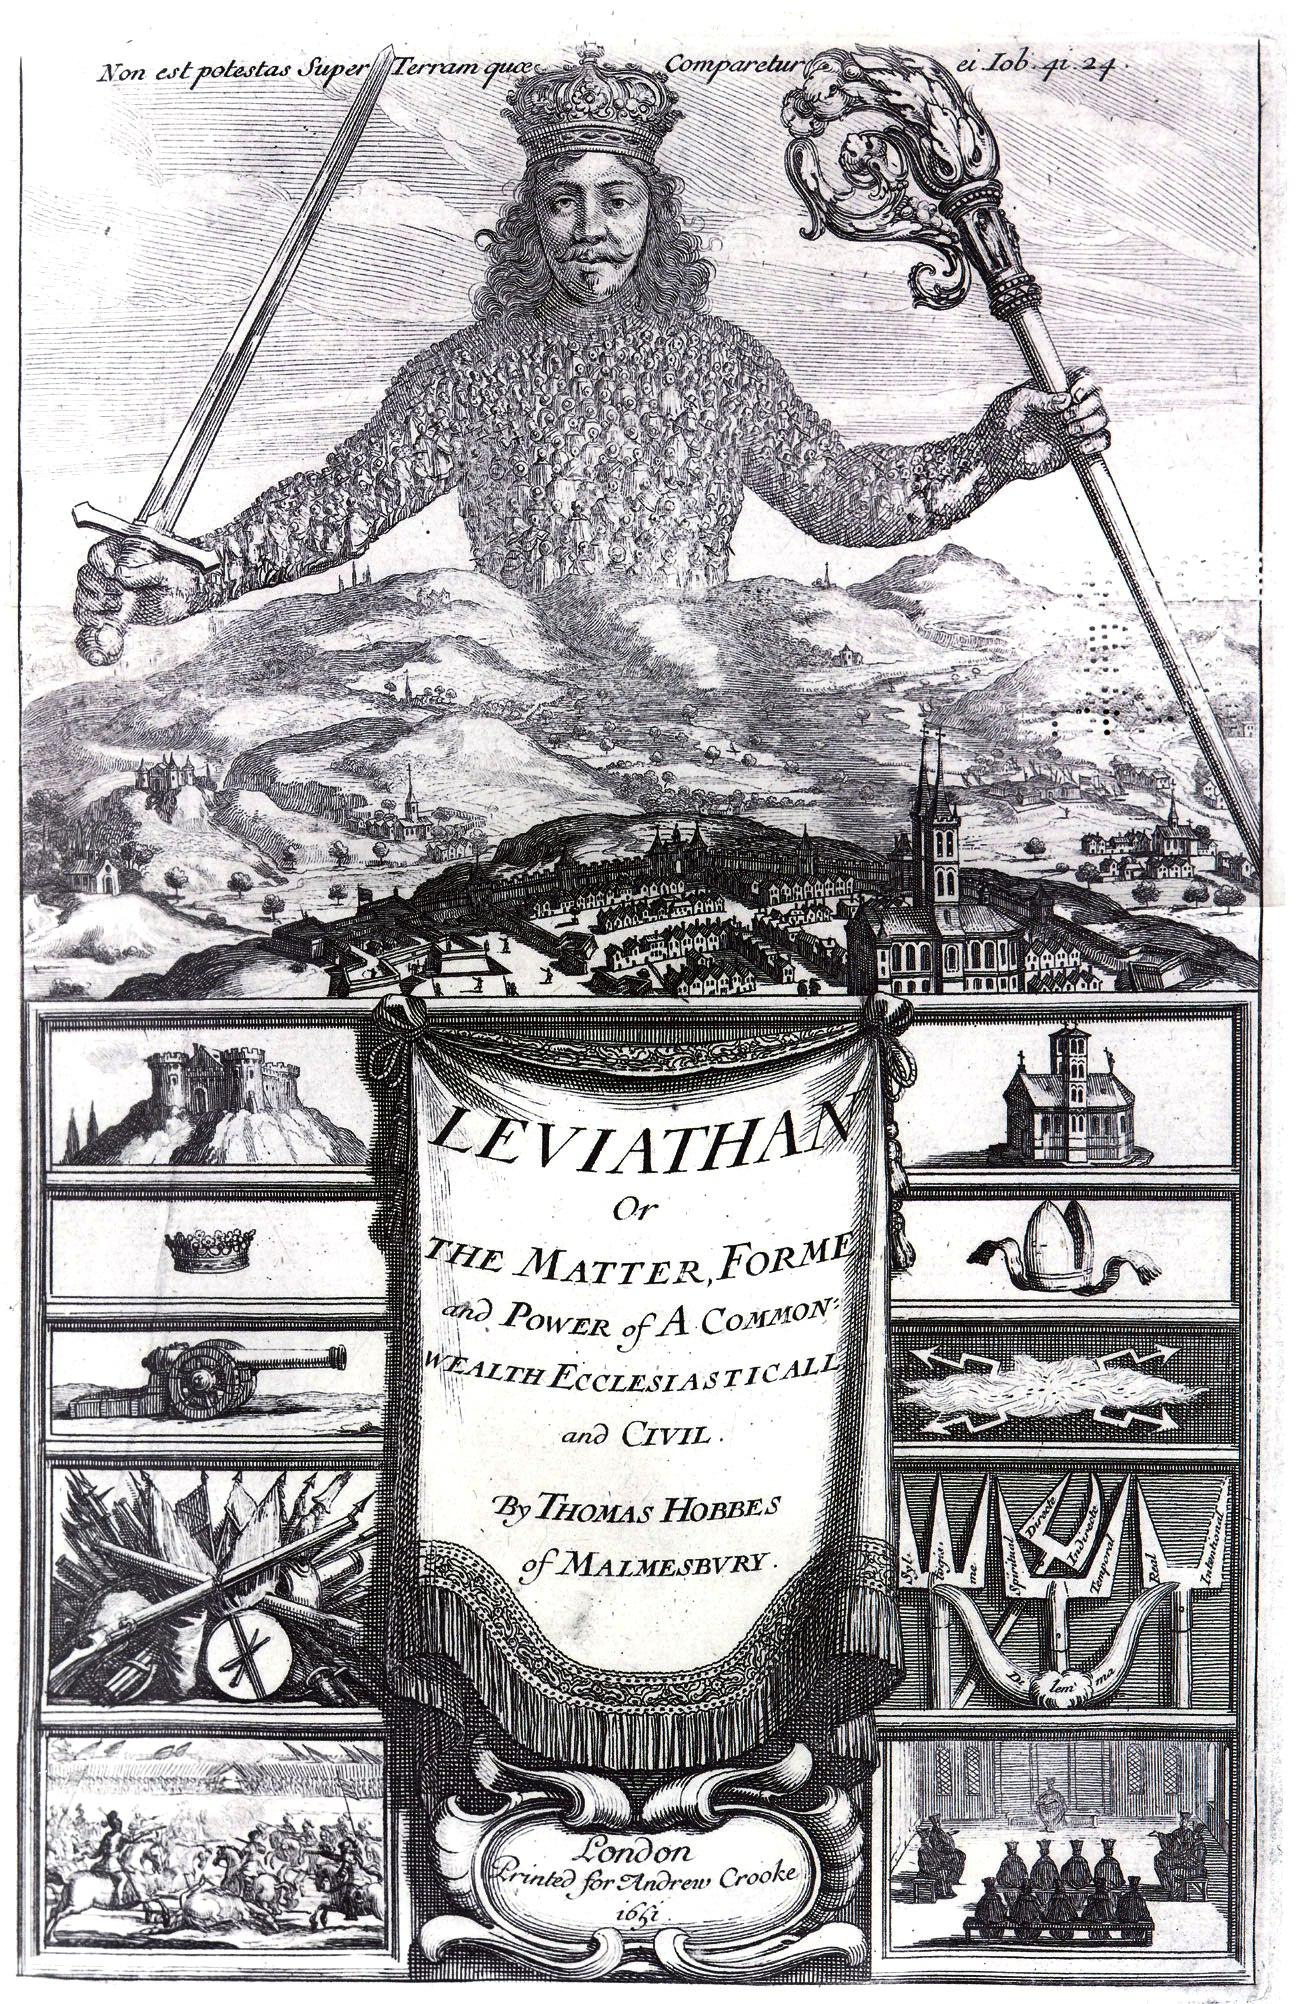 The Logic of Flags (Leviathan by Thomas Hobbes. Source: https://commons.wikimedia.org/wiki/File%3ALeviathan_by_Thomas_Hobbes.jpg)